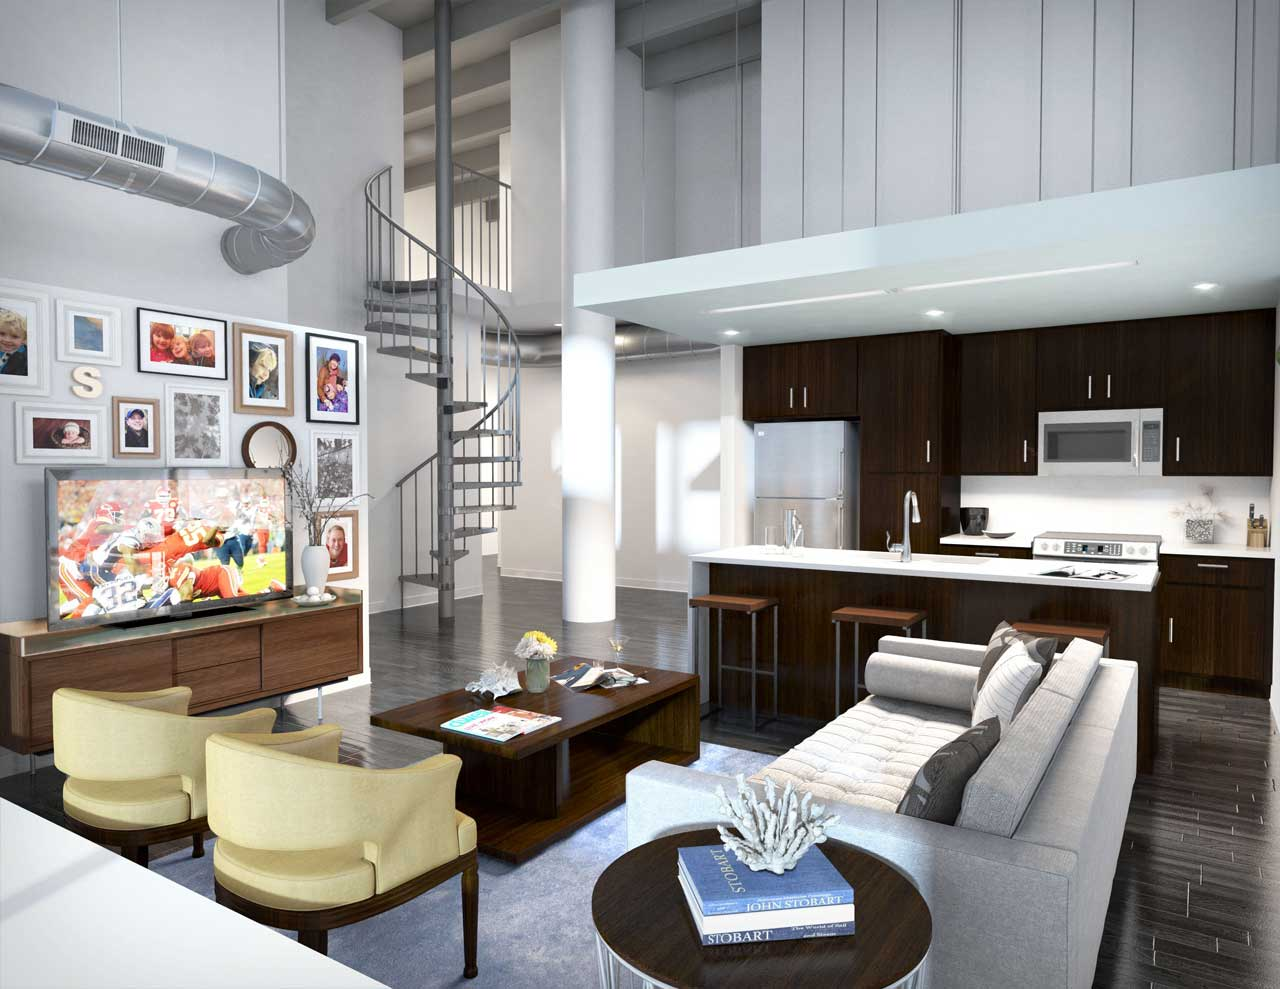 Rendering of a condo interior with furnished living room.